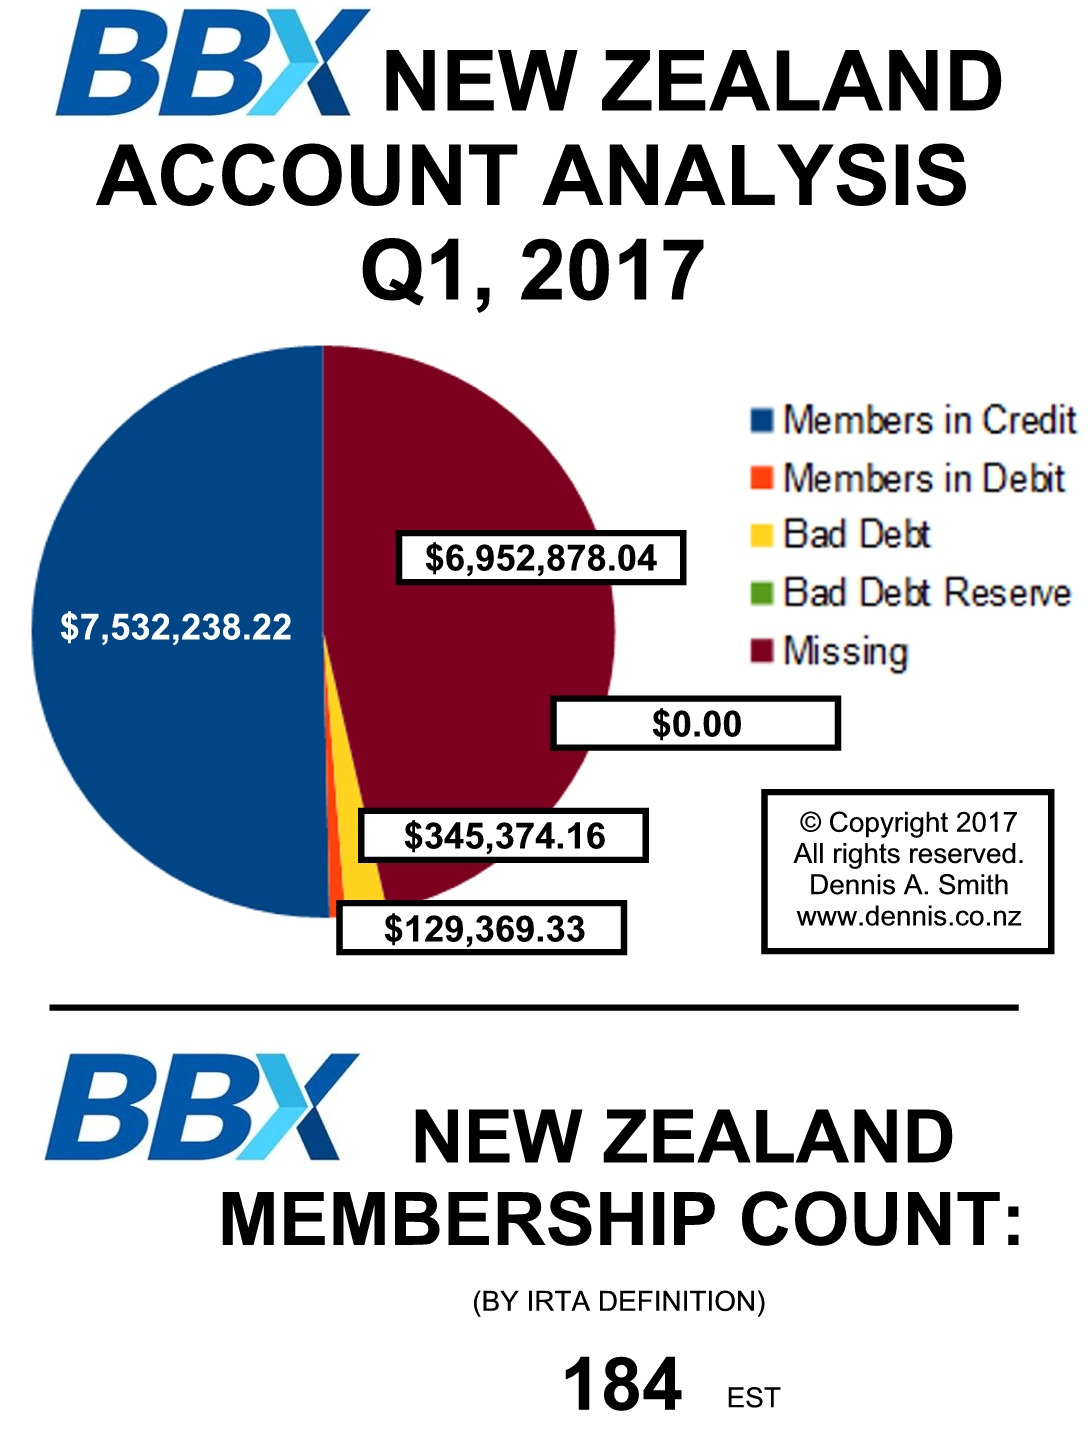 23. BBX New Zealand Analysis